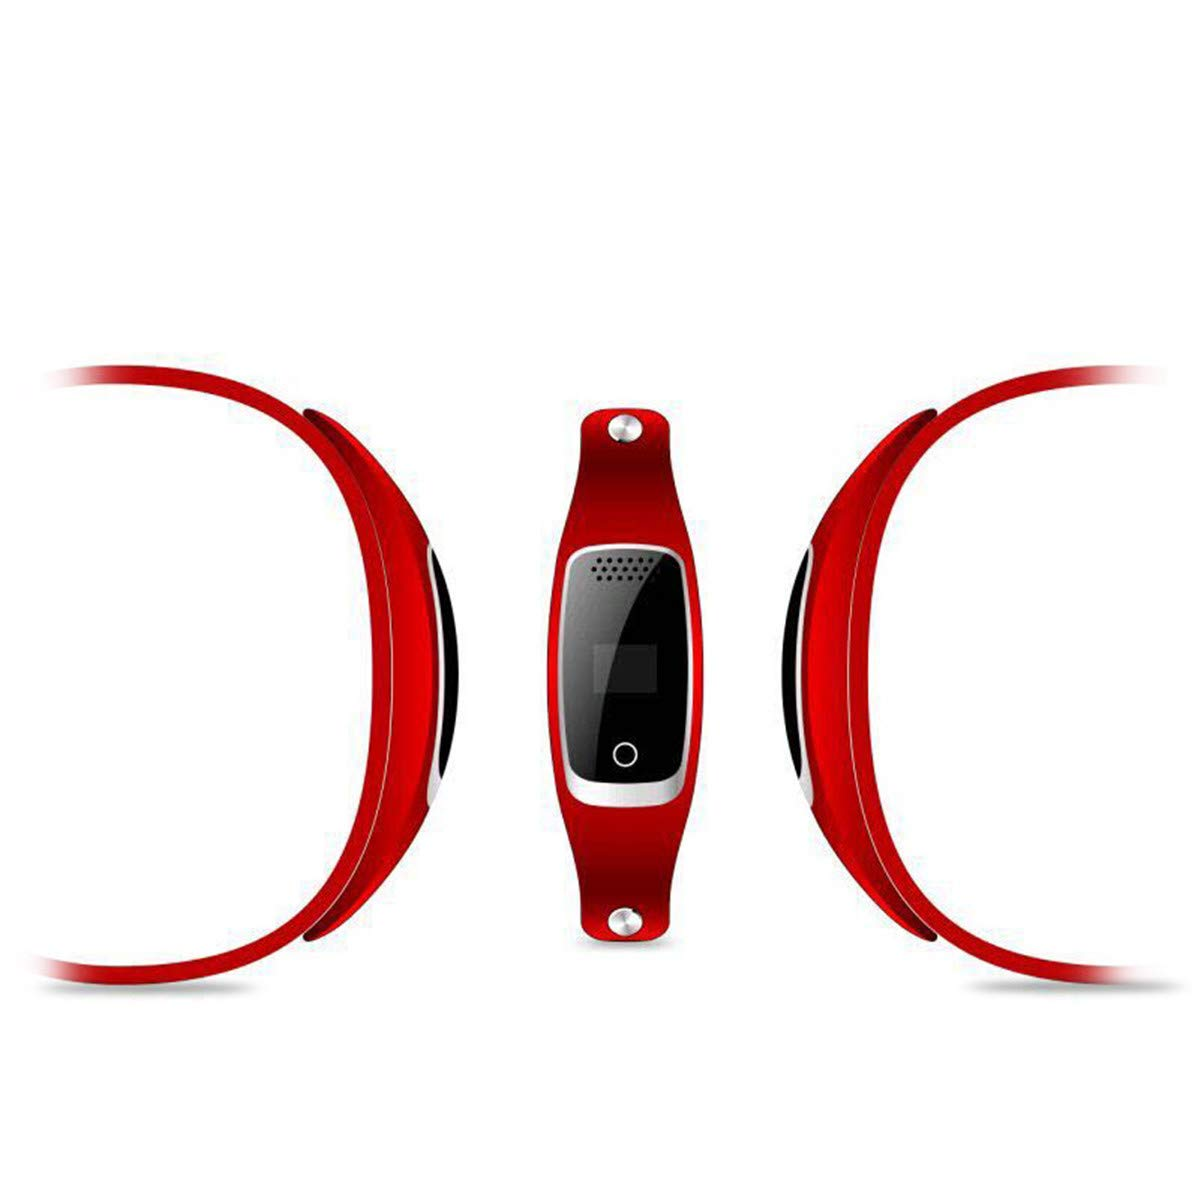 Pet Tracker Free of Monthly Fees - GPS Tracking Collar for Dogs and Cats & Pet Activity Monitor,Red by CHANMI